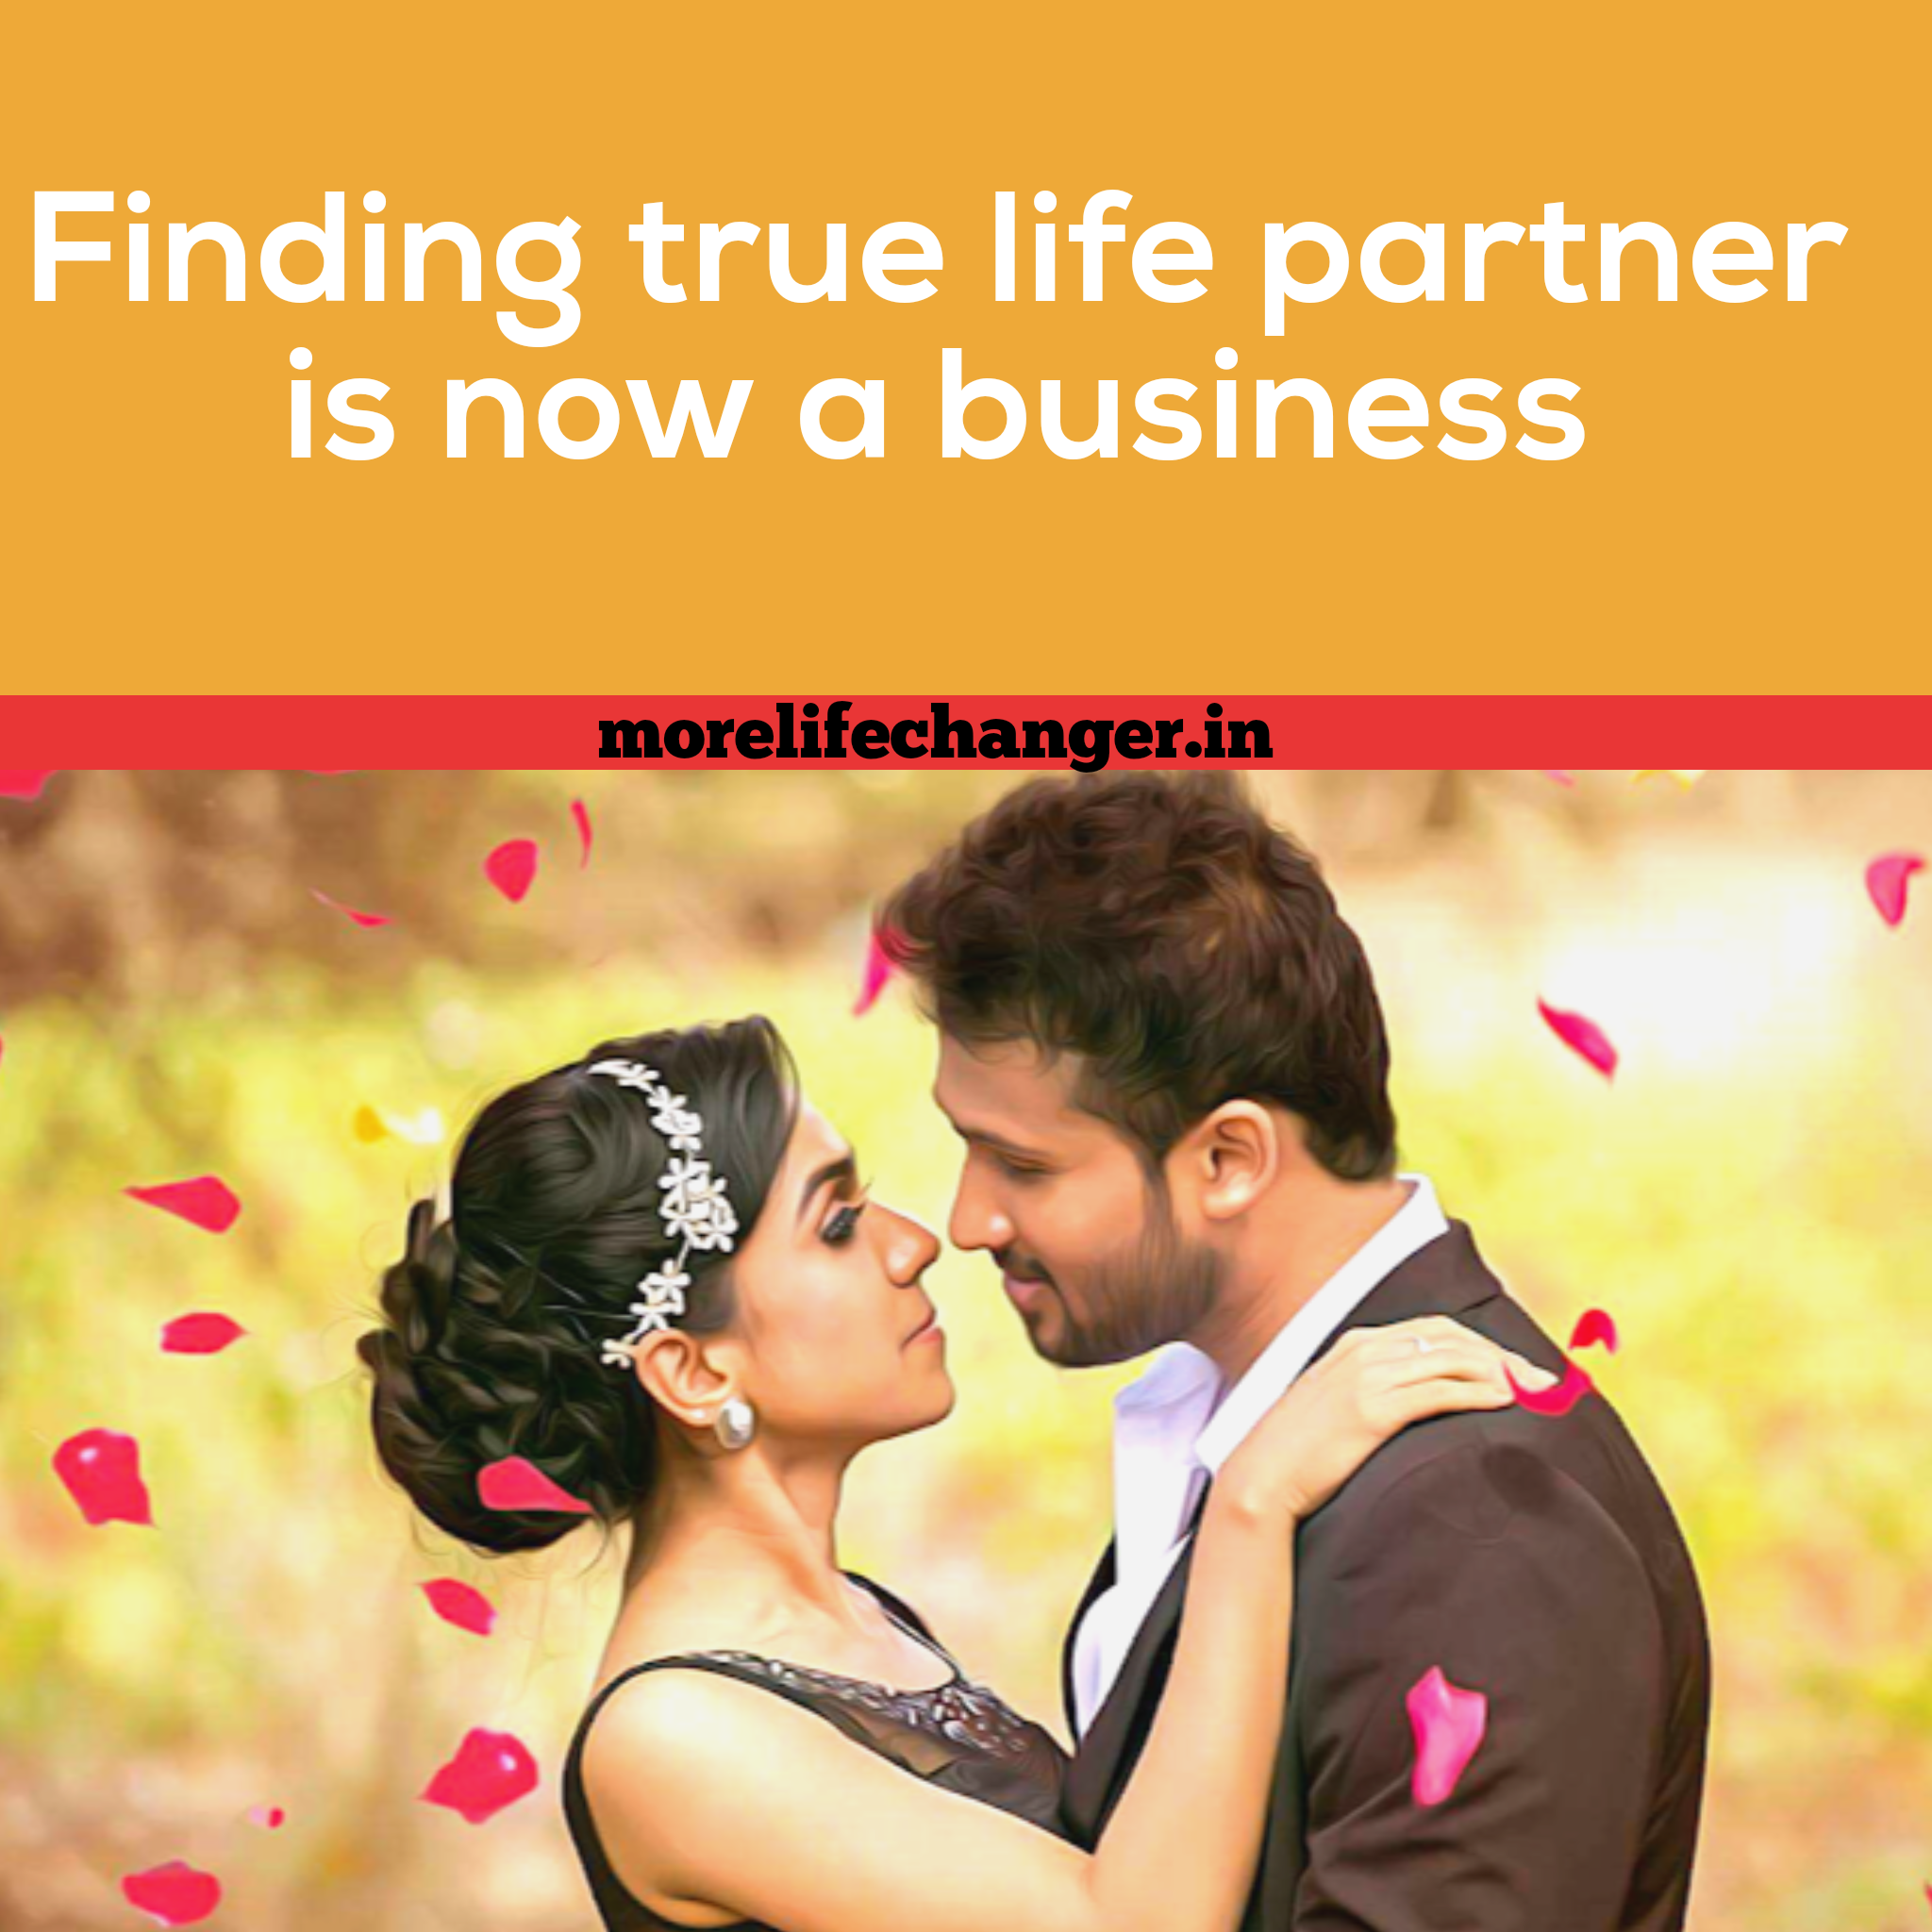 Finding true life partner is now business